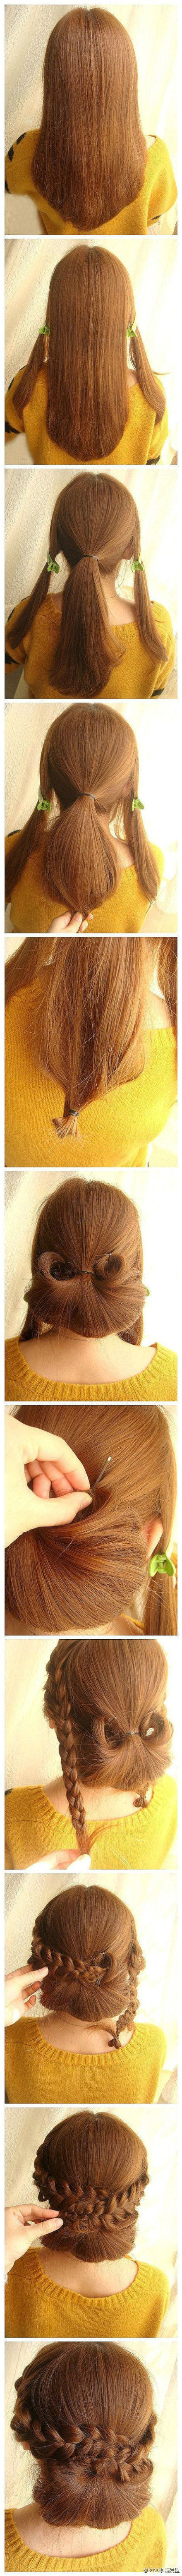 best beach hair images on pinterest cute hairstyles make up